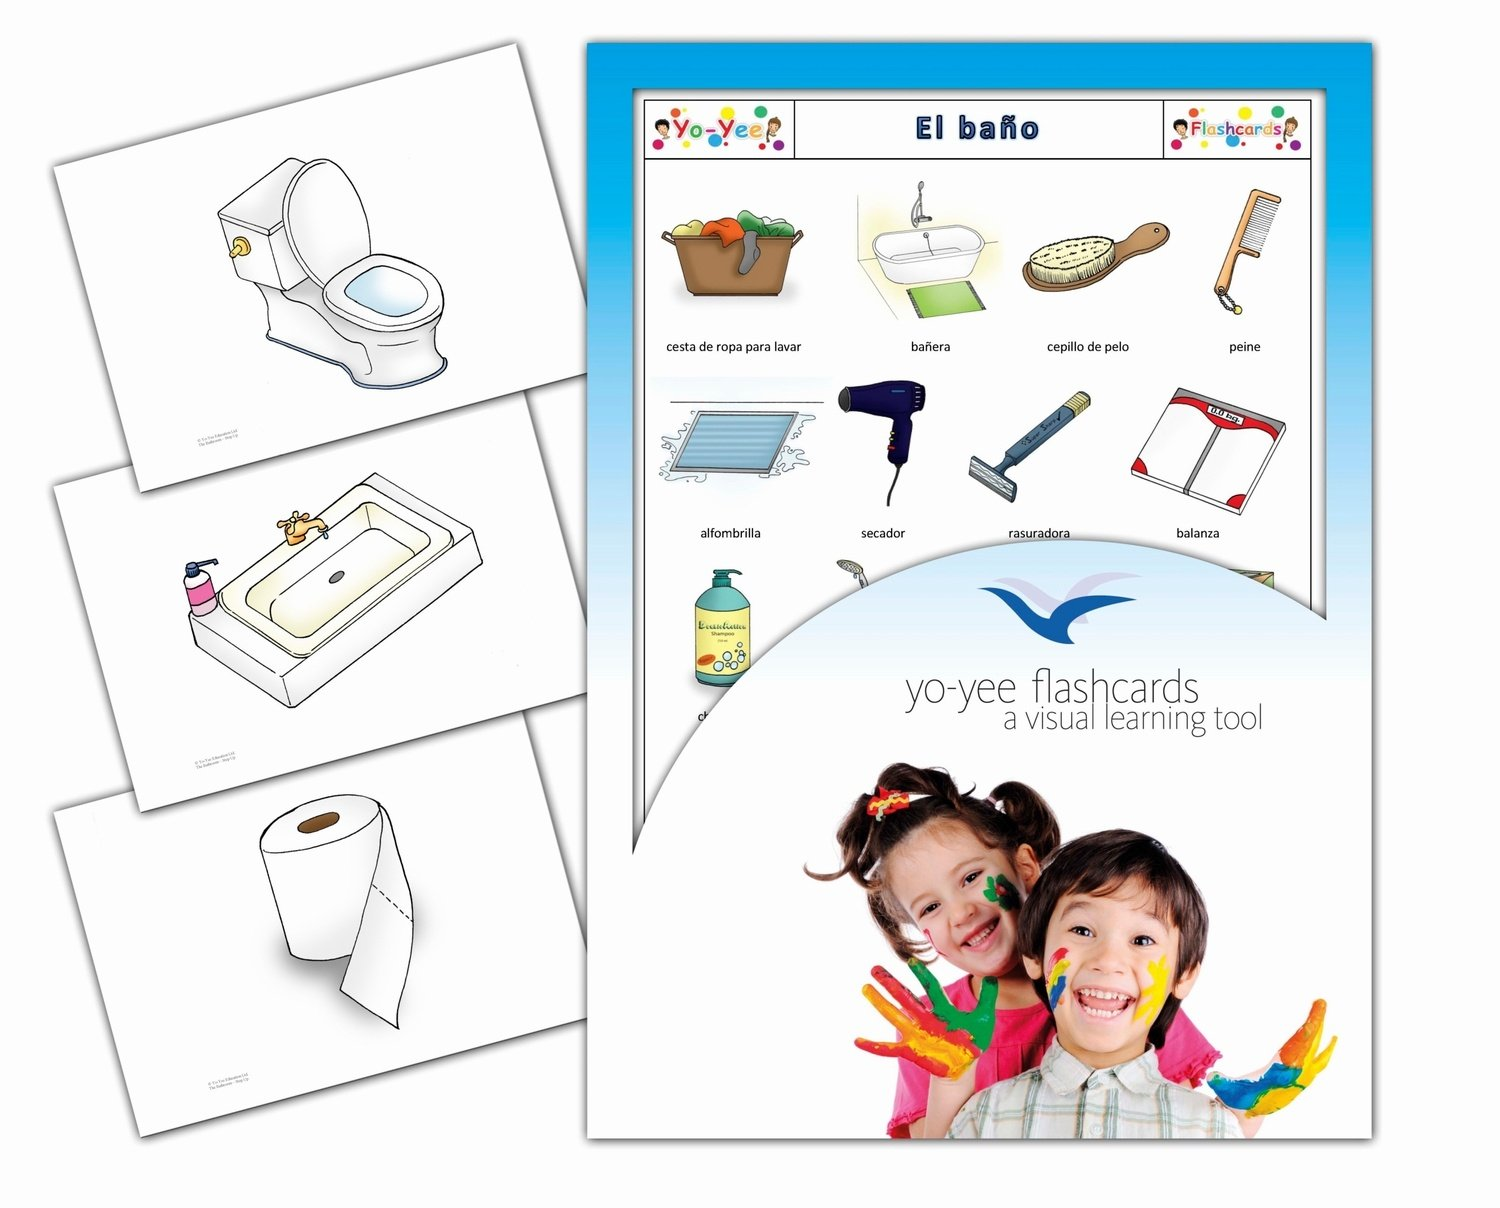 Amazon.com: Tarjetas de vocabulario - El baño - Spanish Bathroom and Body Care Flashcards for Kids, Toddlers, Children and Adults: Toys & Games